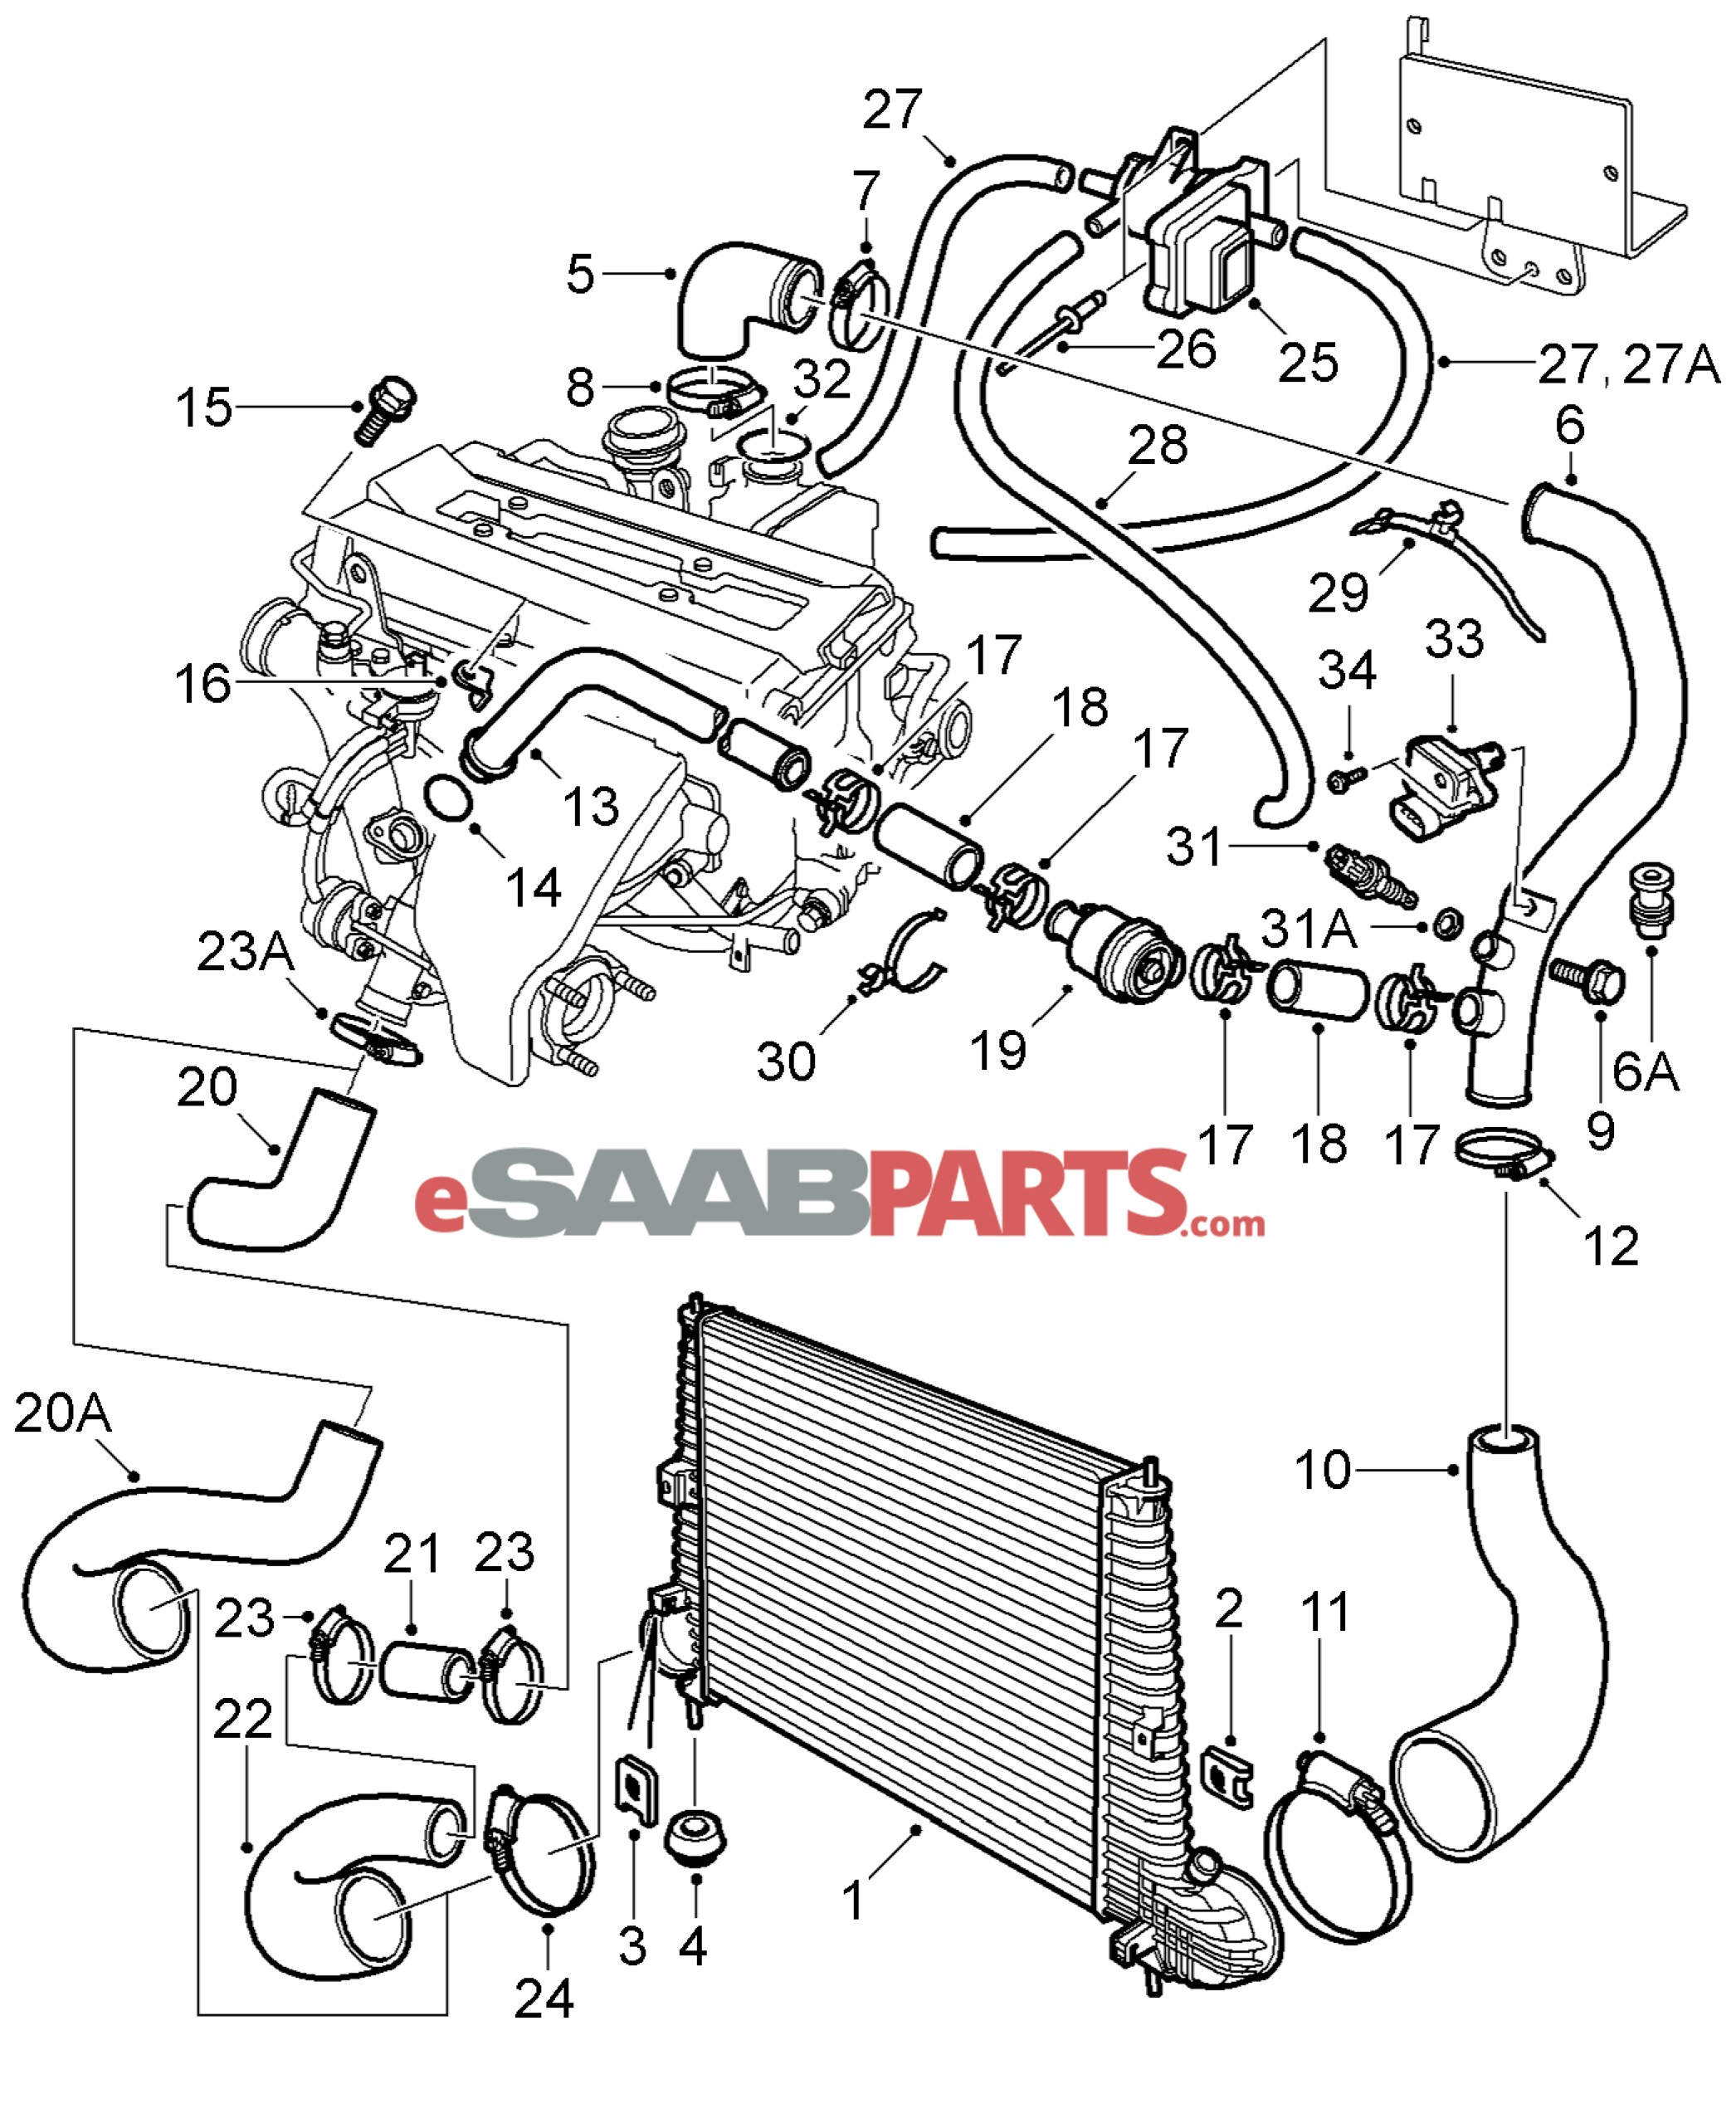 2008 Pontiac Vibe Engine Diagram Free Download 2007 Wave Wiring Montana 3 9 Circuit And Hub U2022